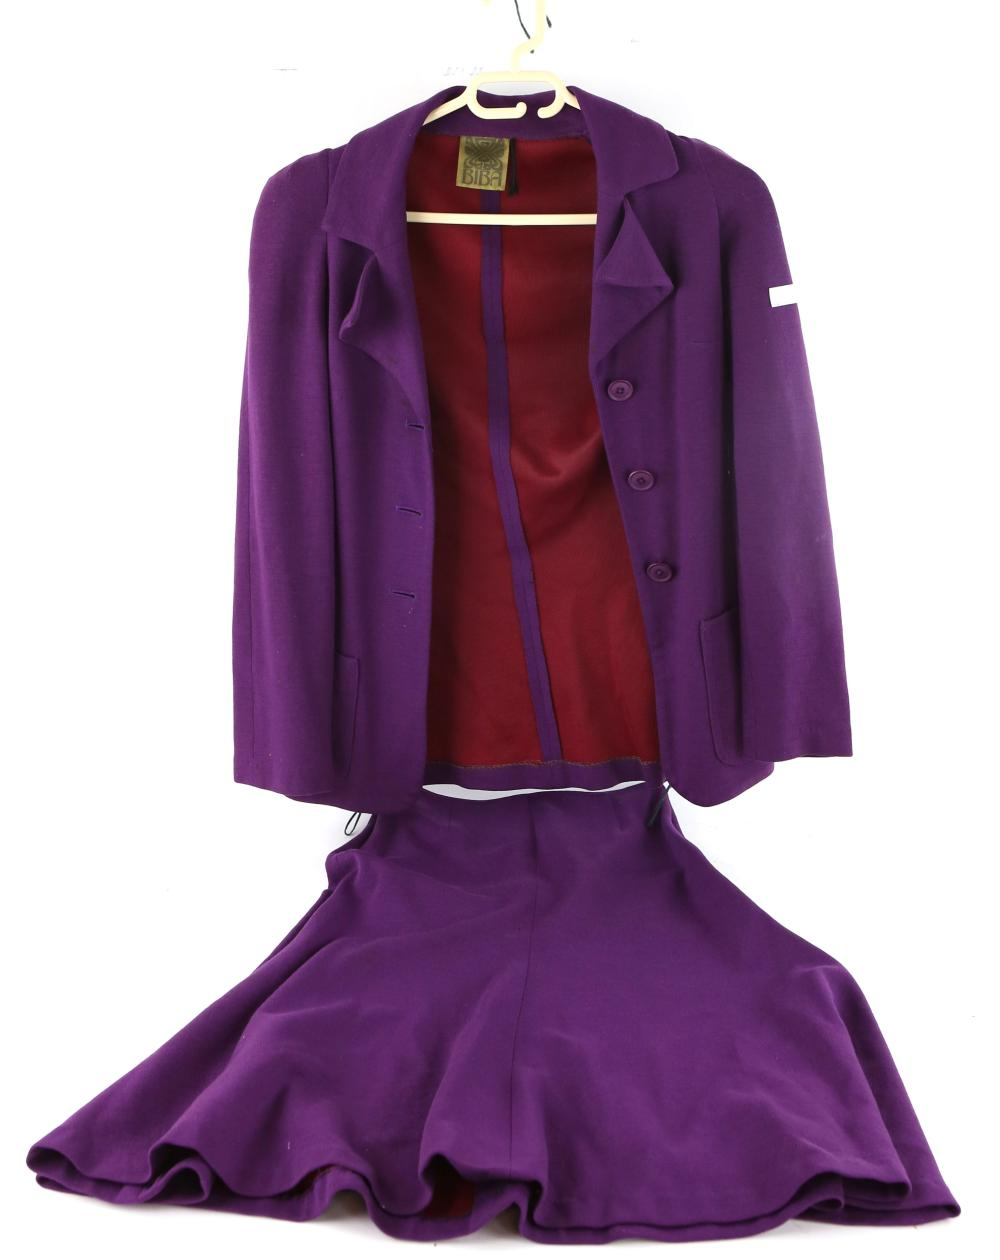 Sold Price Biba 1960s Purple Jersey Skirt Suit And Later Day July 4 0119 2 00 Pm Bst